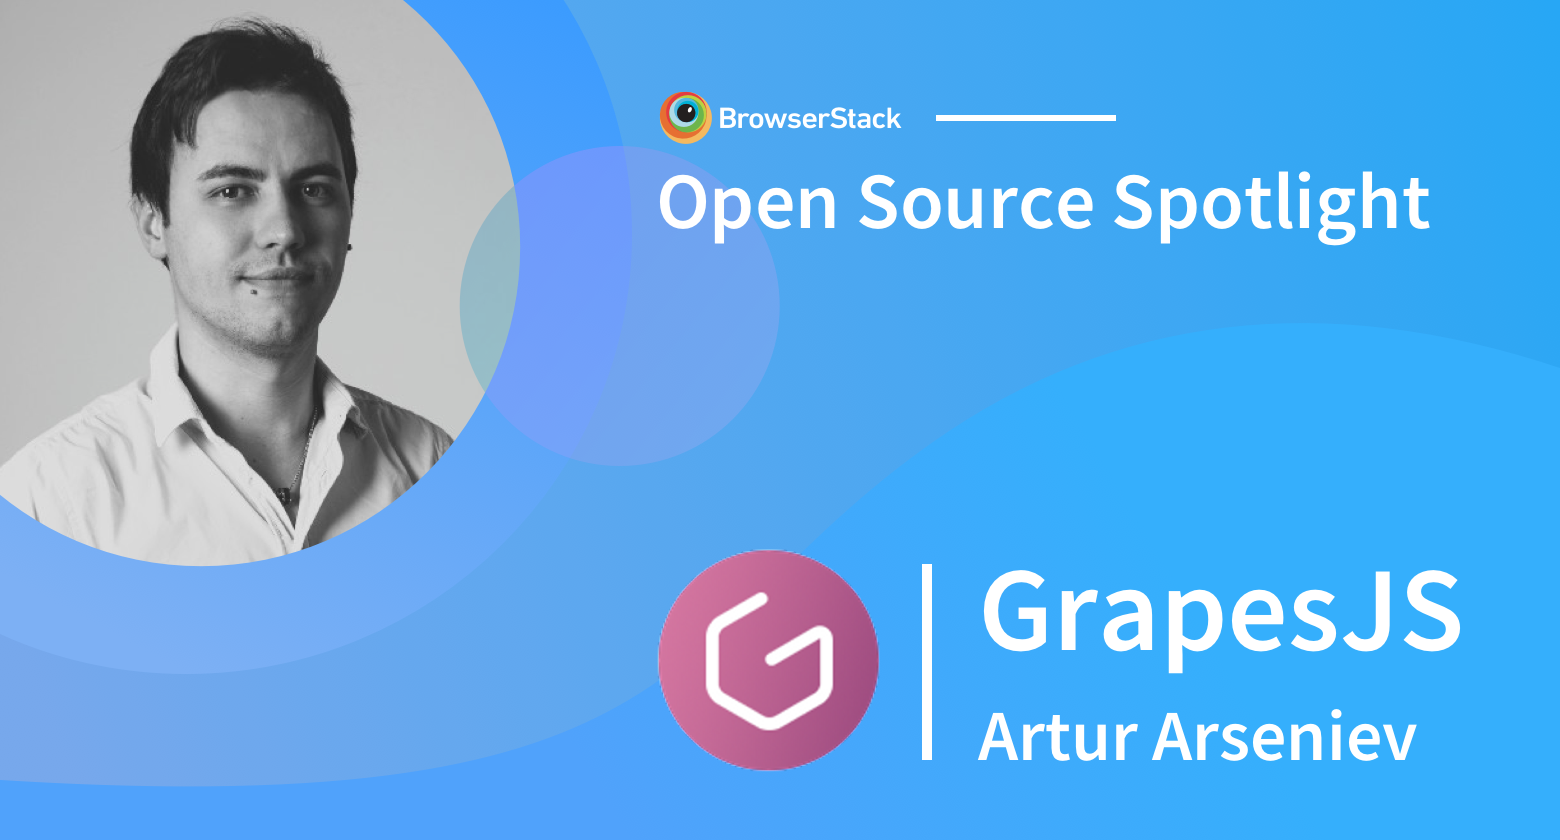 Open Source Spotlight: GrapesJS with Artur Arseniev